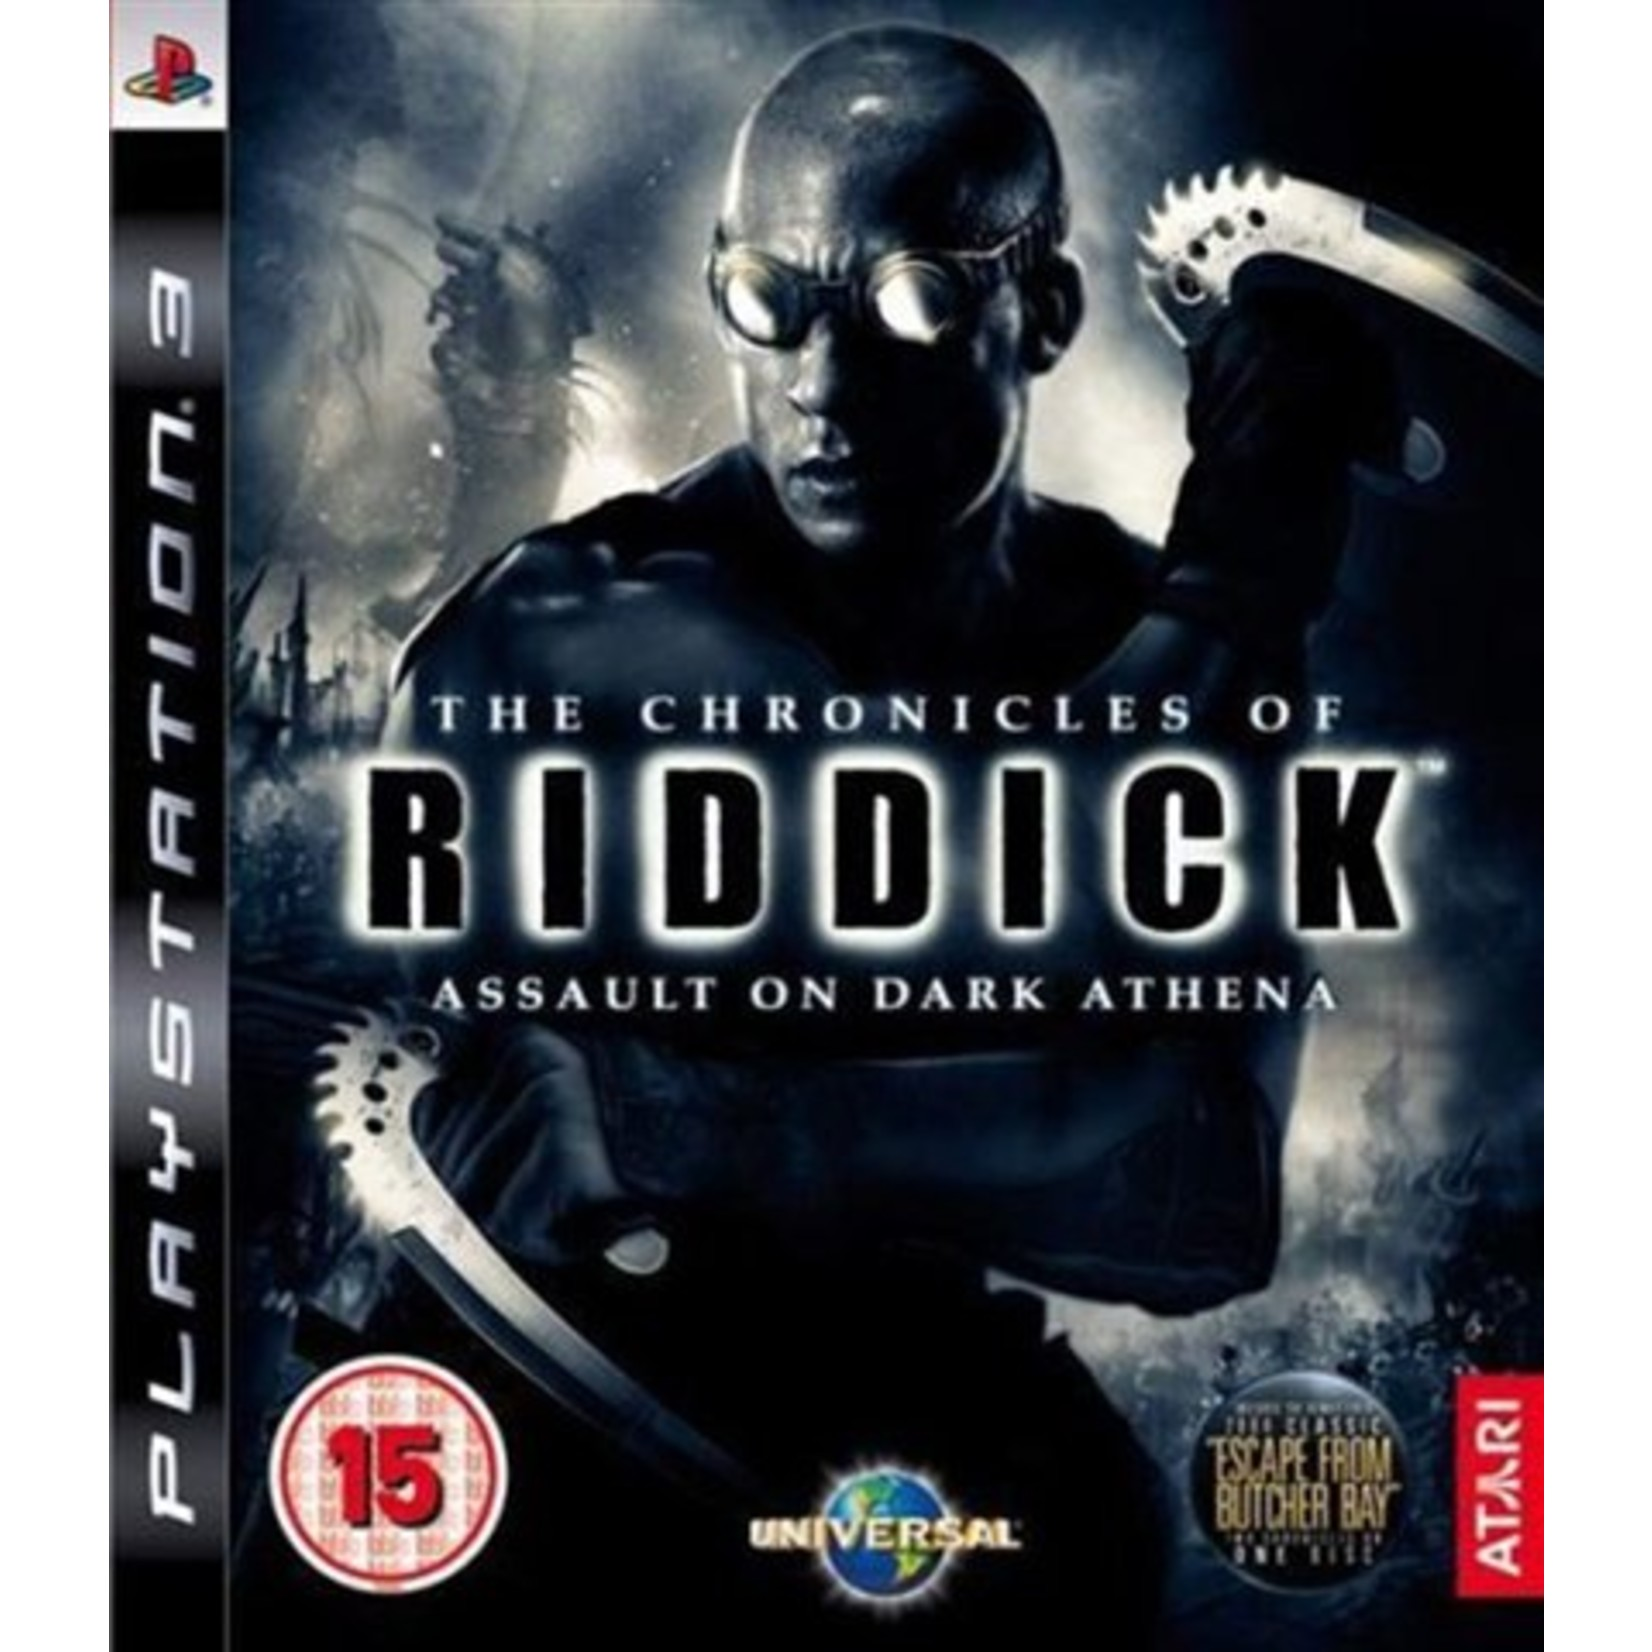 The chronicles of Riddick - Assault On Dark Athena